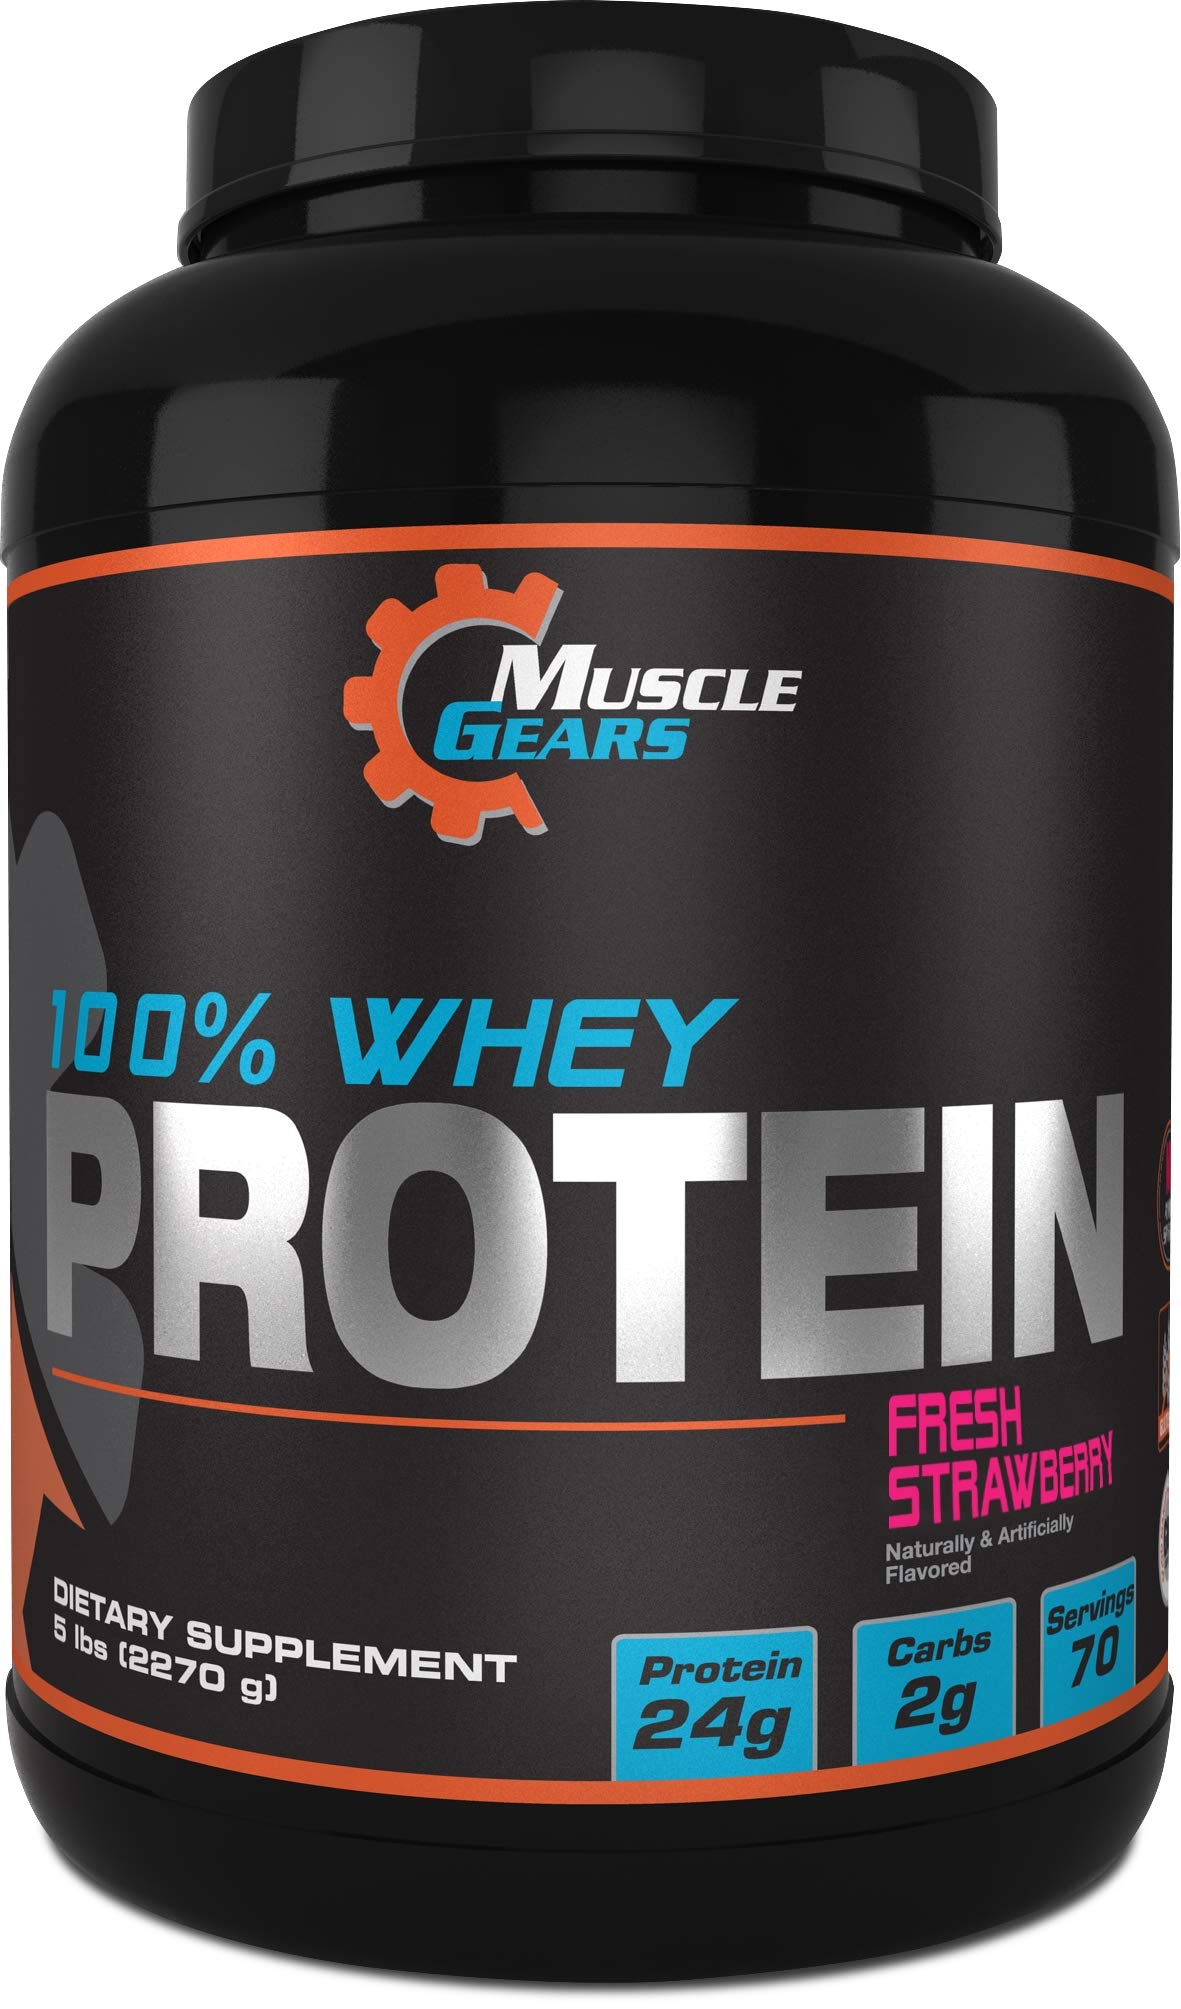 100% Whey Protein (5lb, Strawberry) by Muscle Gears